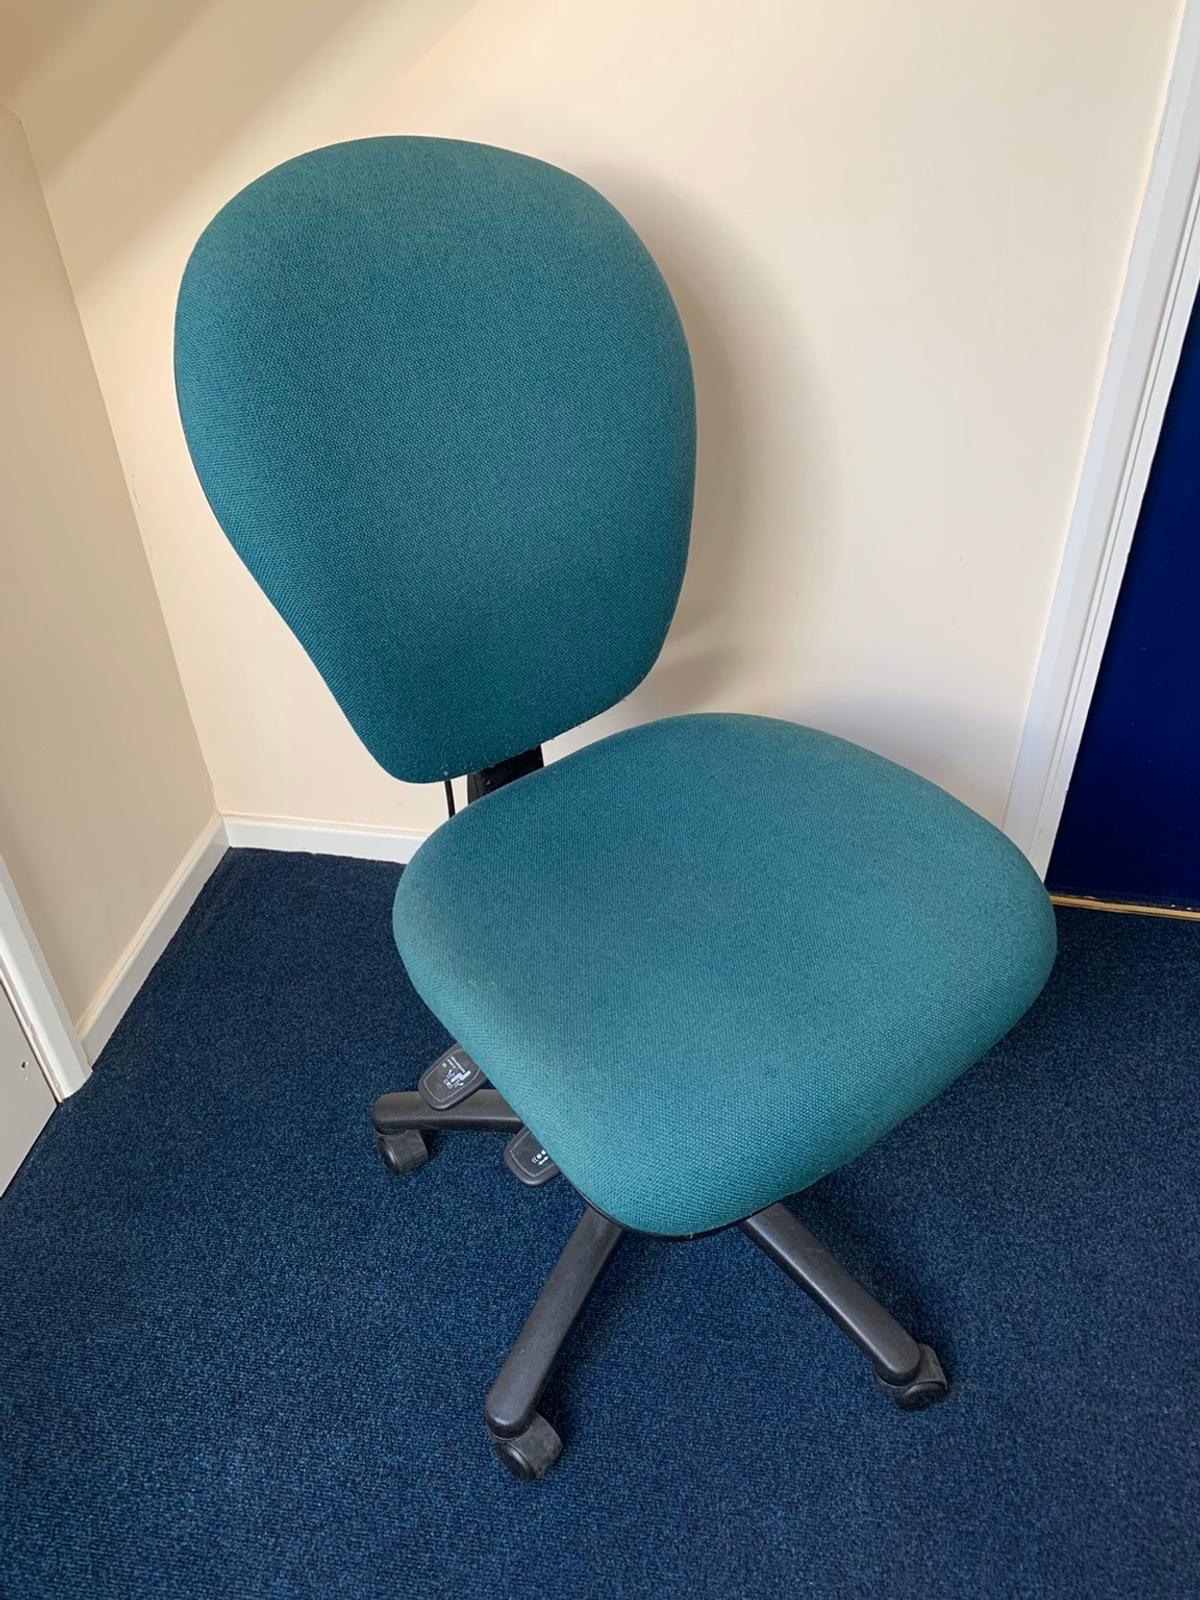 Great condition. Swivel, lift, recline. Collection from sheafbank business park S23en Monday to Friday 9-5